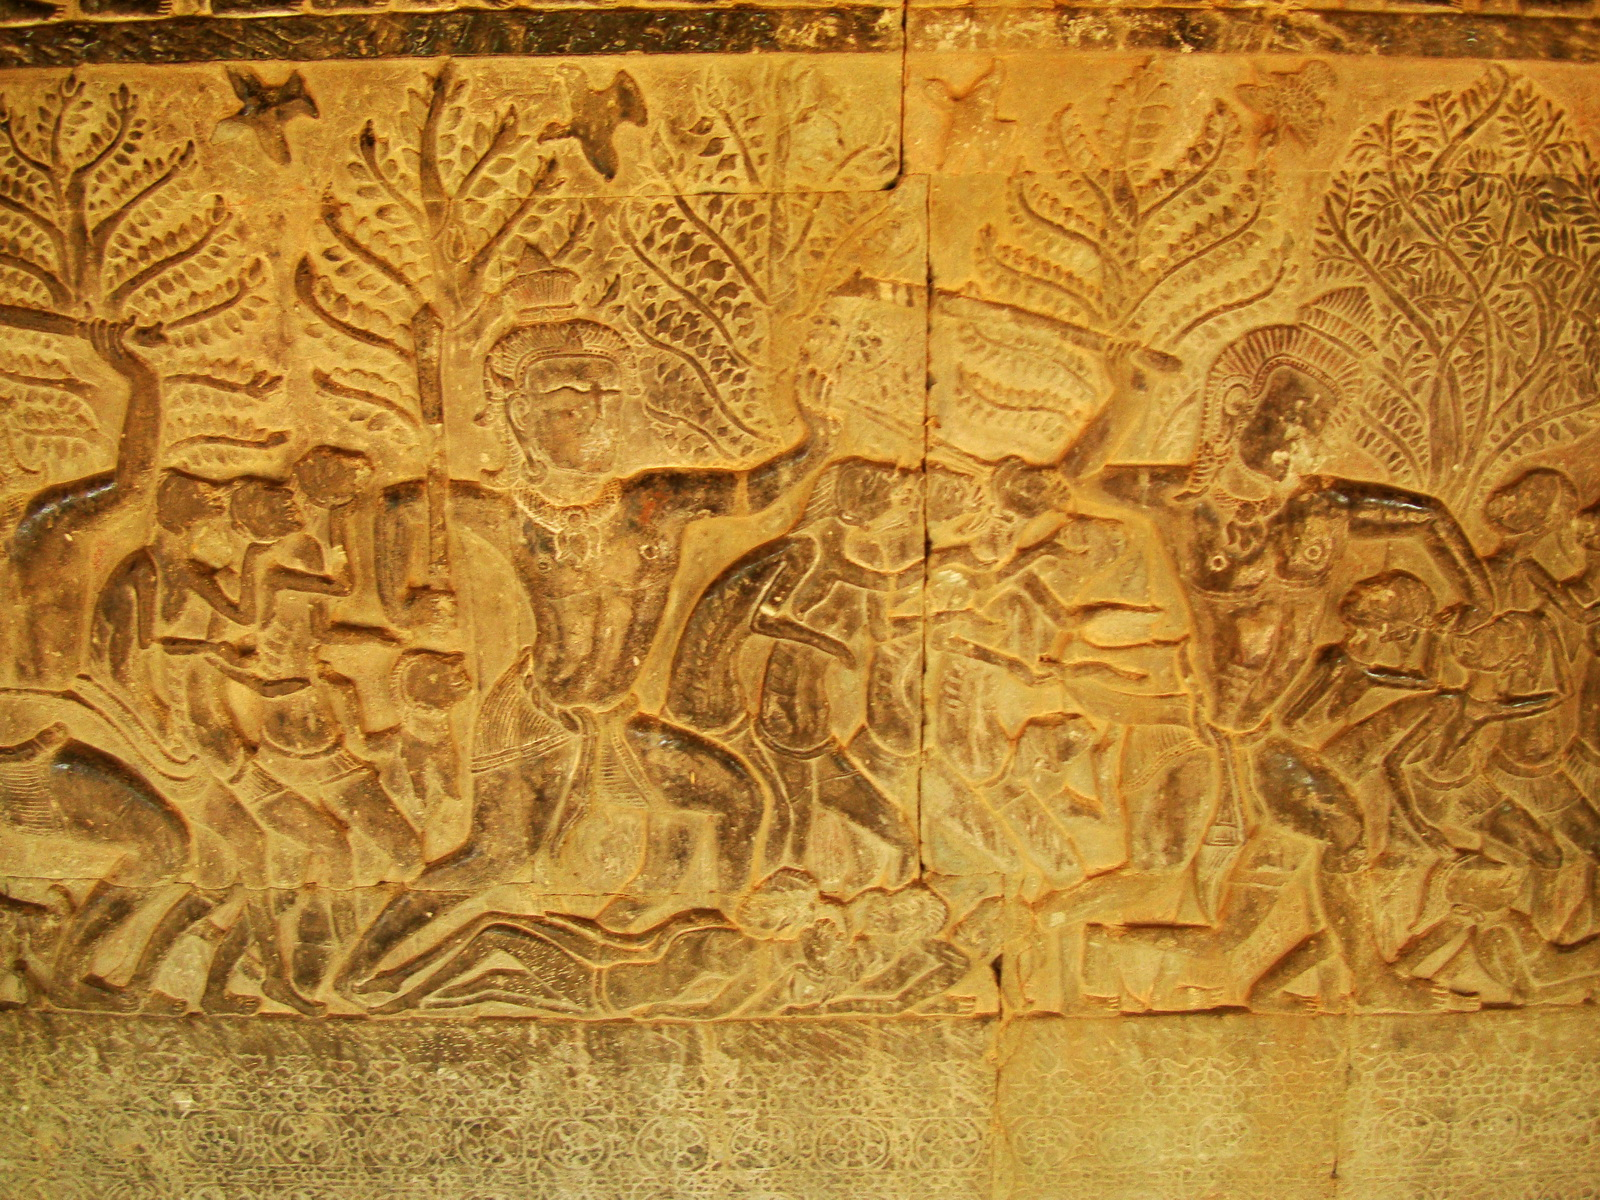 Angkor Wat Bas relief S Gallery E Wing Heavens and Hells 36